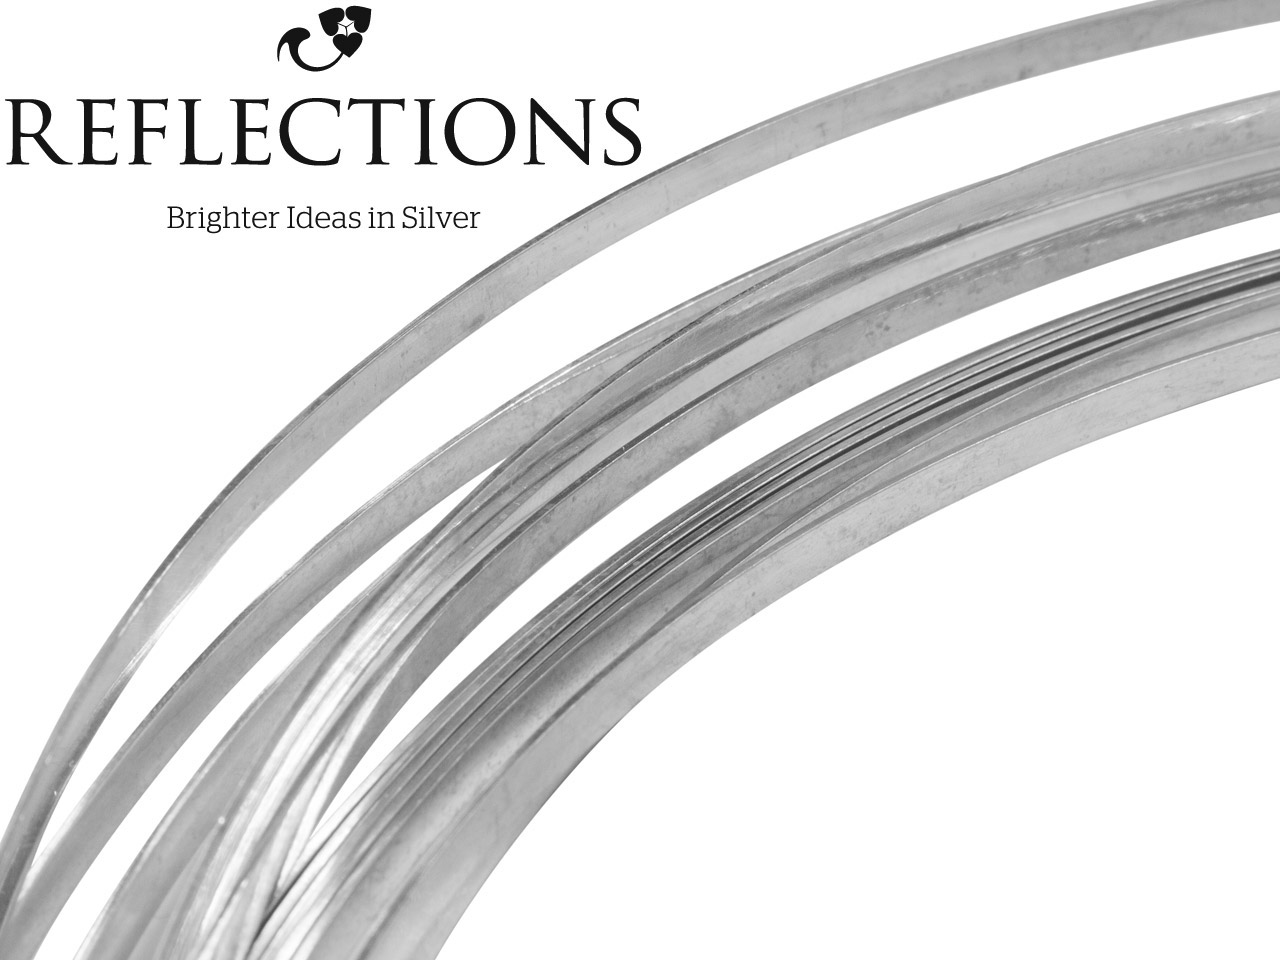 Reflections Silver Rectangular Wire 6.00mm X 2.00mm. Fully Annealed     Soft